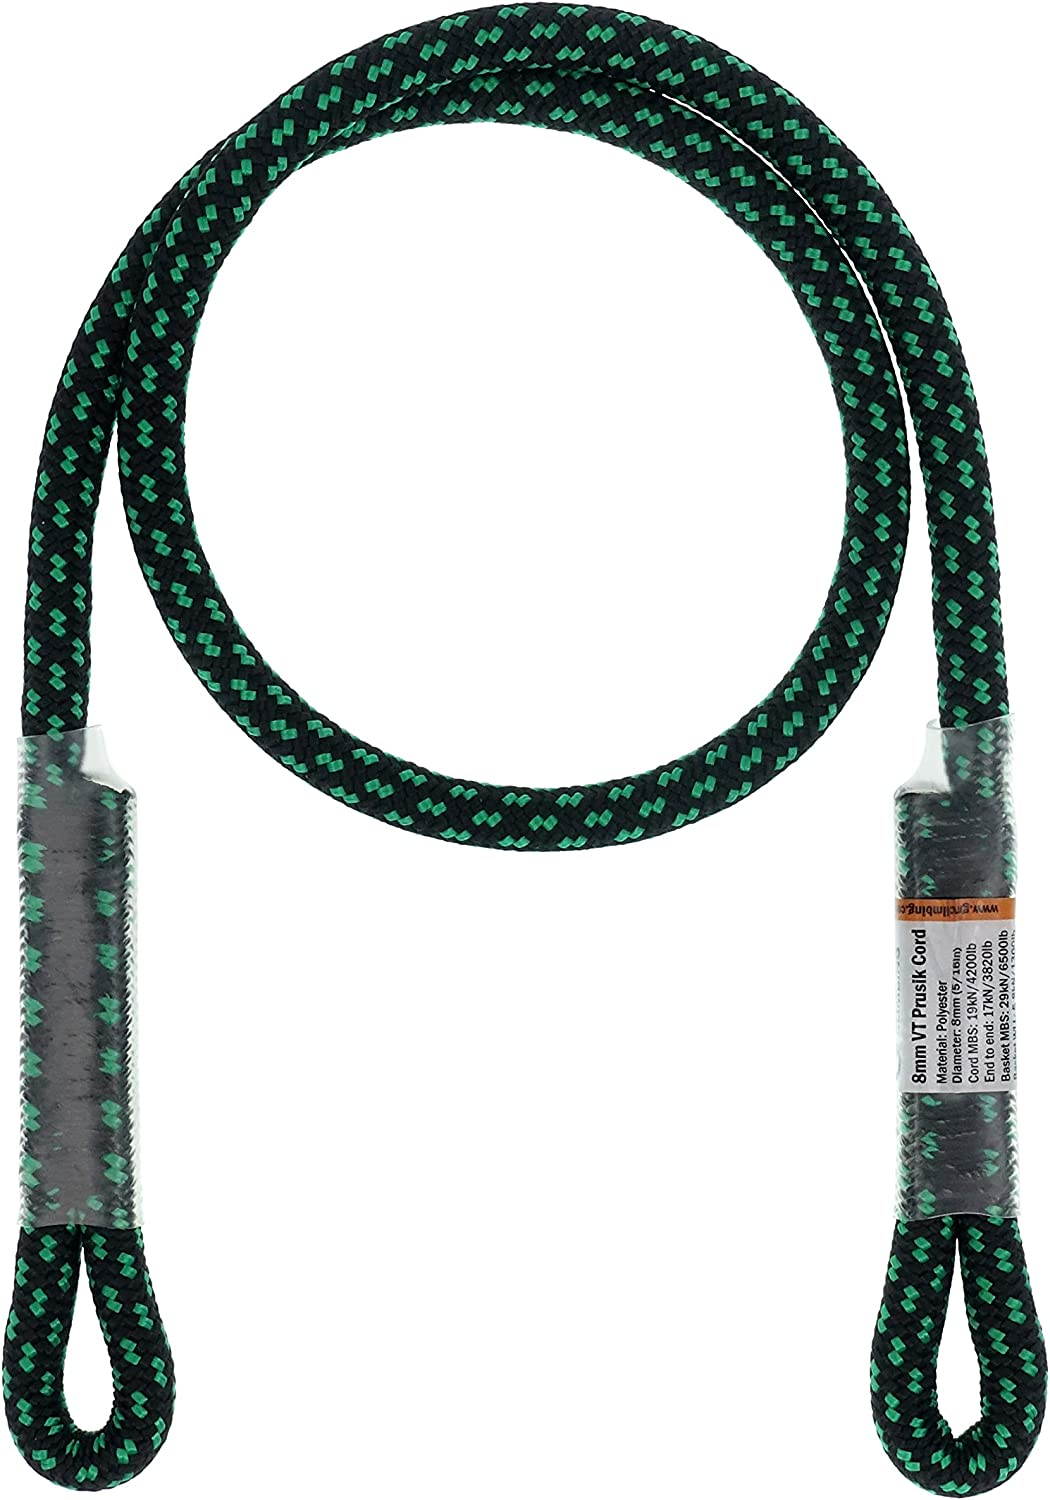 "GM CLIMBING 8mm (5/16"") Prusik Swen Eye-to-Eye Pre-Sewn 30 inch : Sports & Outdoors"